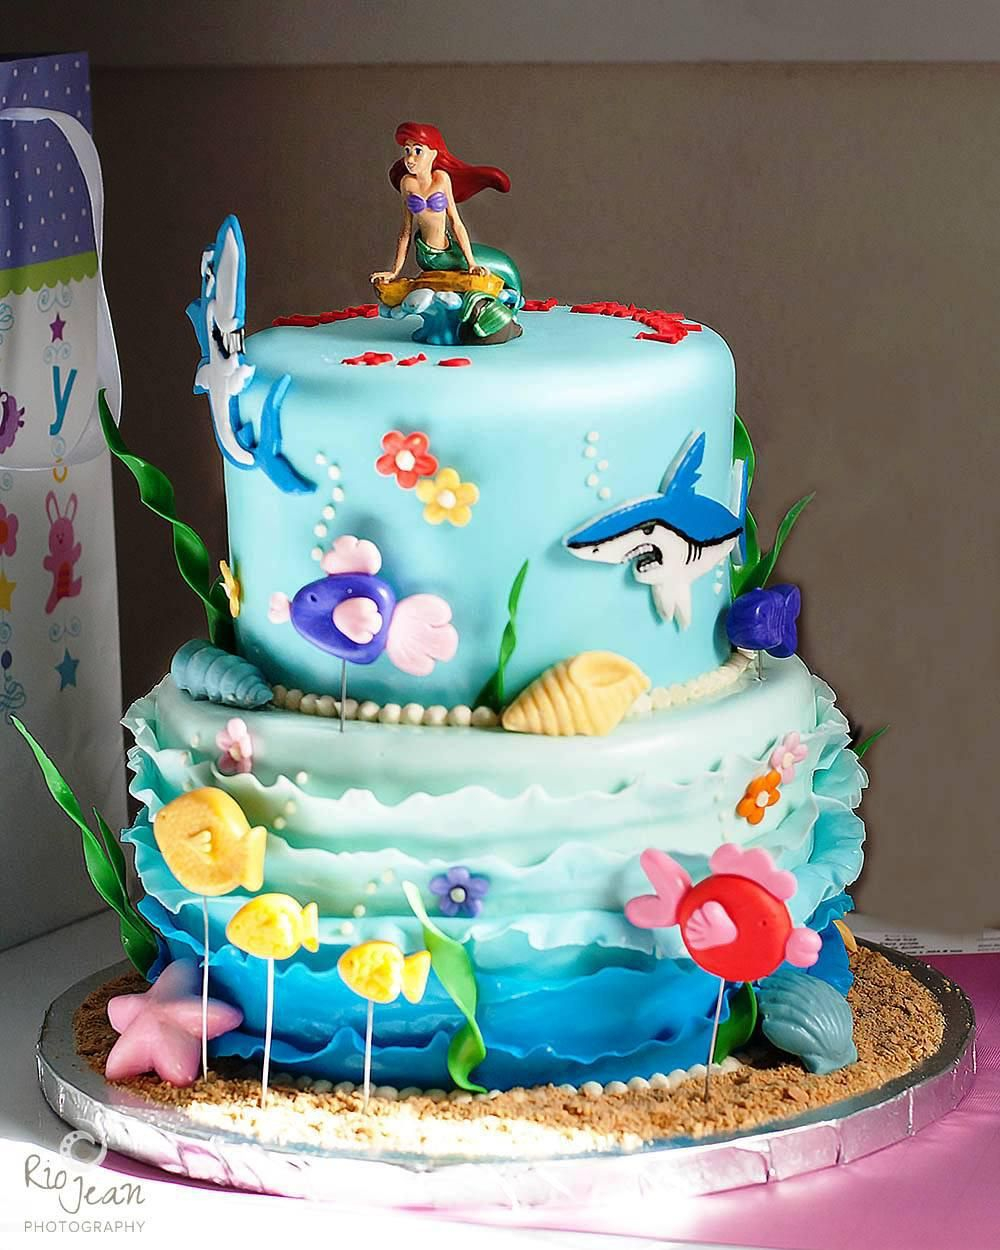 Ariel Birthday Cakes Little Mermaid Birthday Party Cake Ideas Little ...